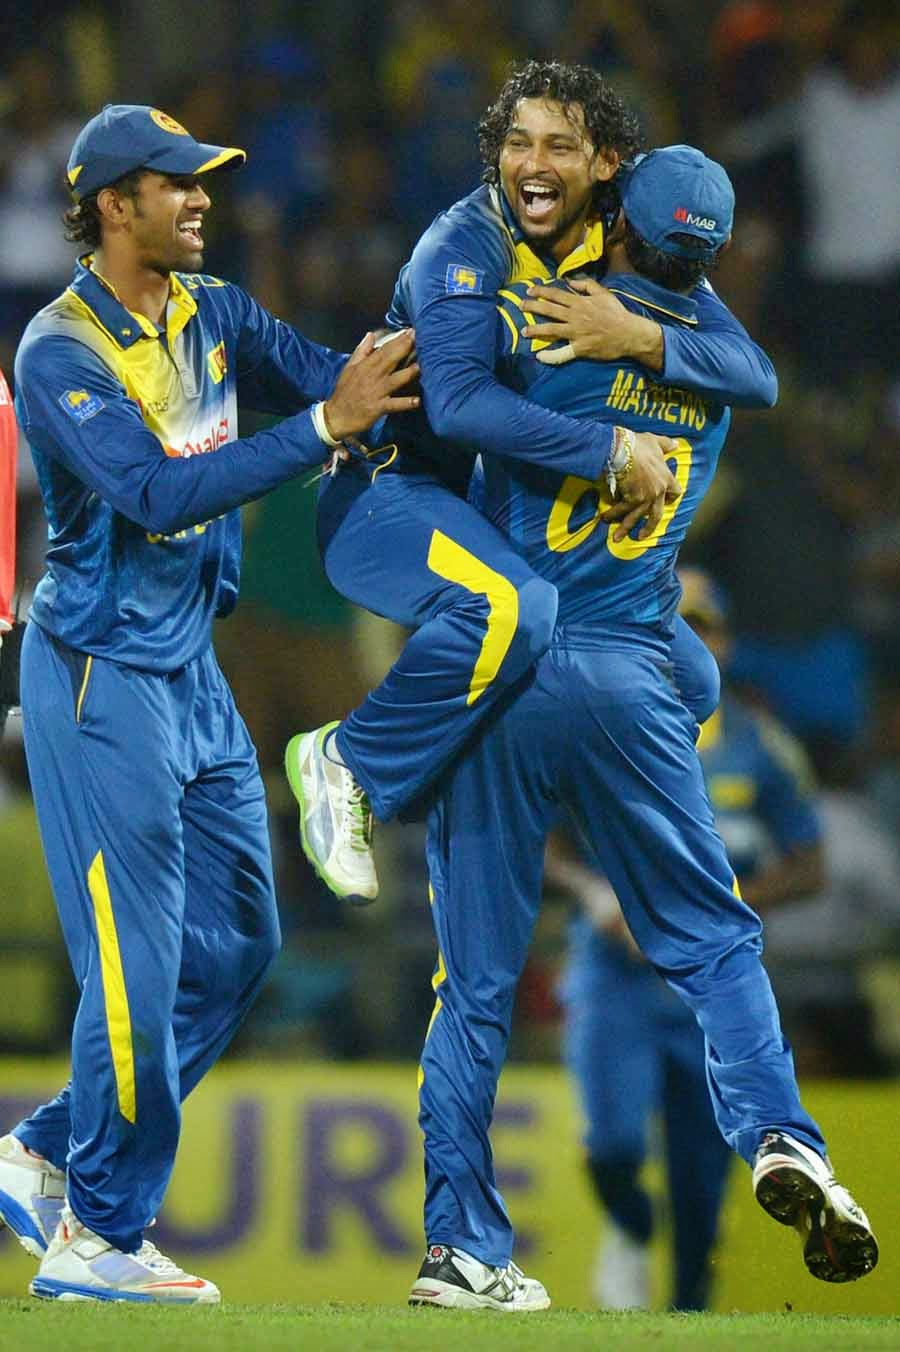 Sri Lanka beat South Africa by 87 runs in 2nd ODI